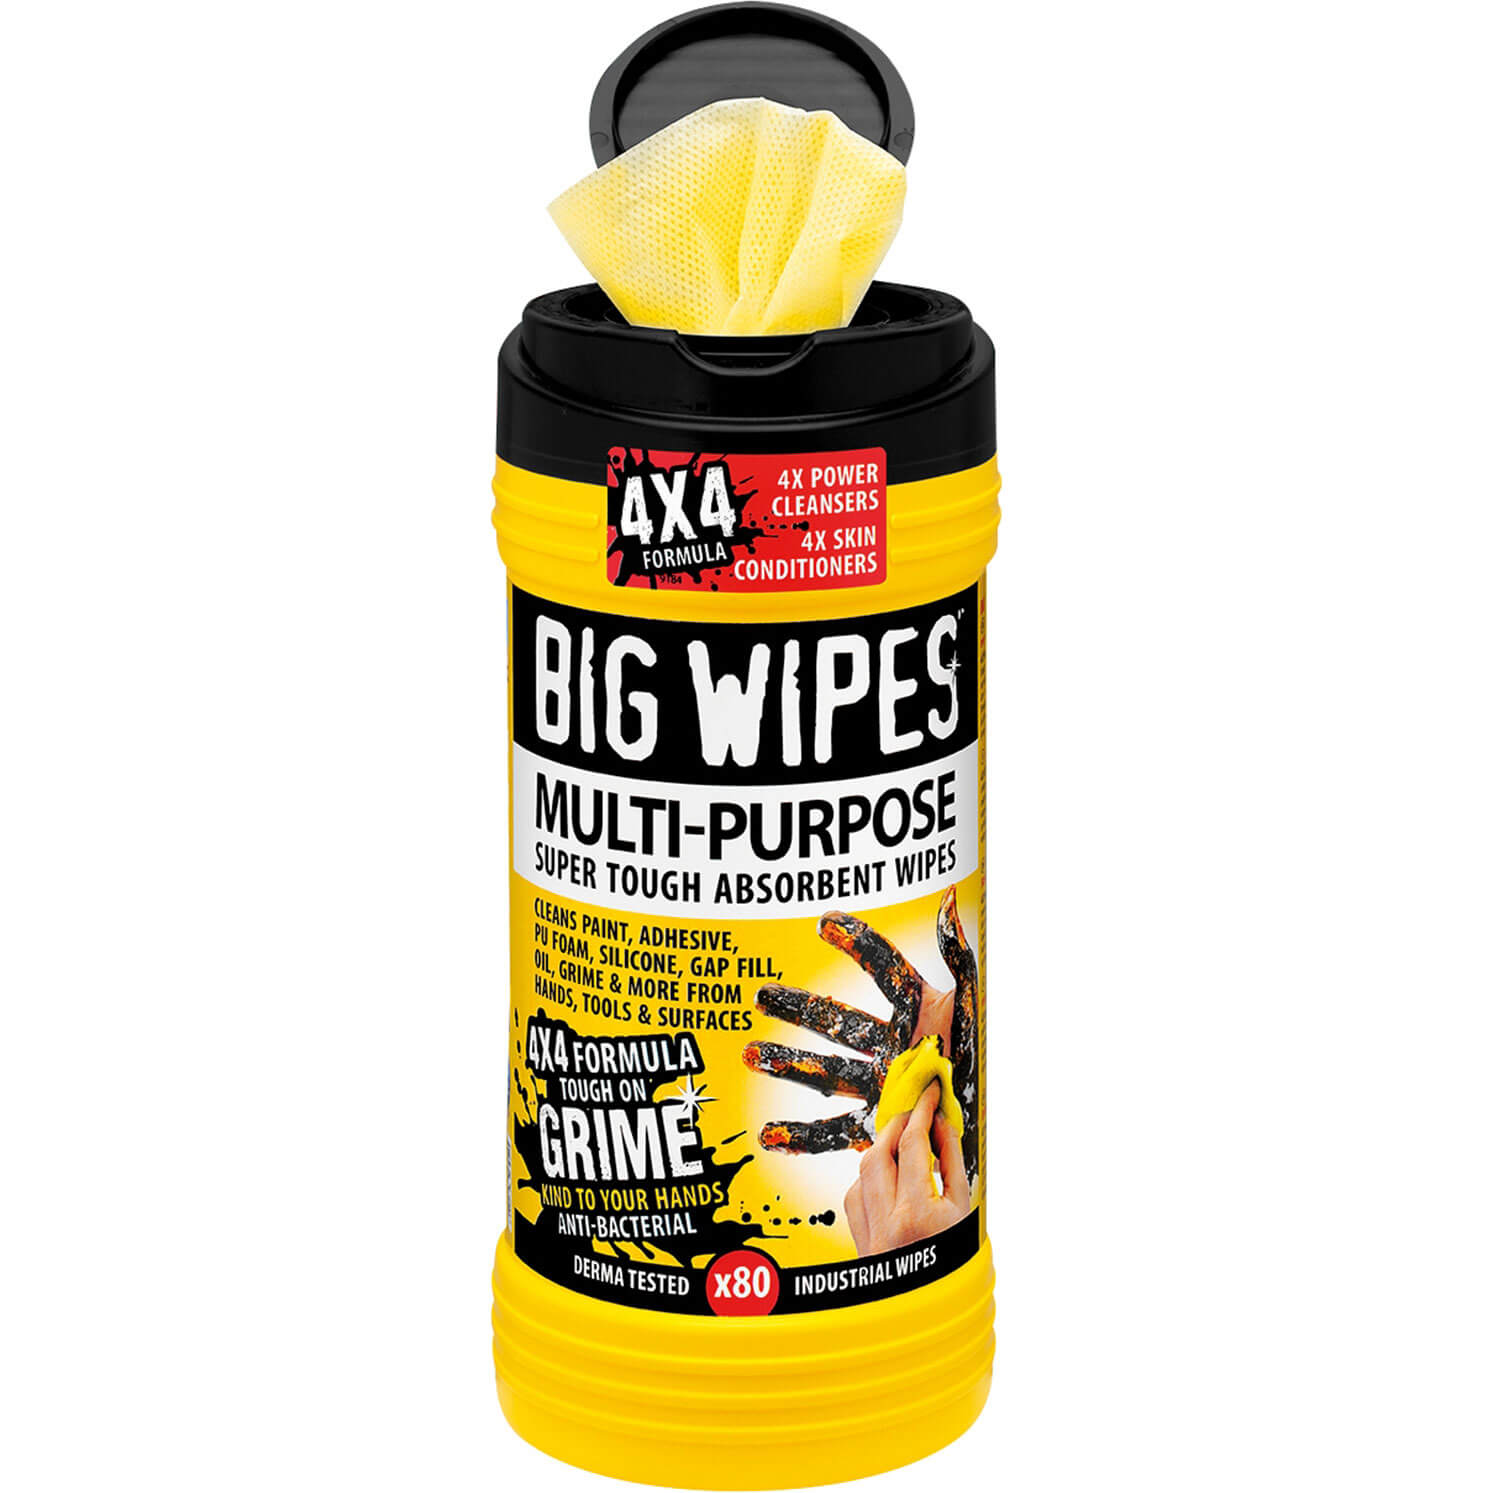 Image of Big Wipes Black Top 4x4 Multi Purpose Hand Cleaning Pack of 80